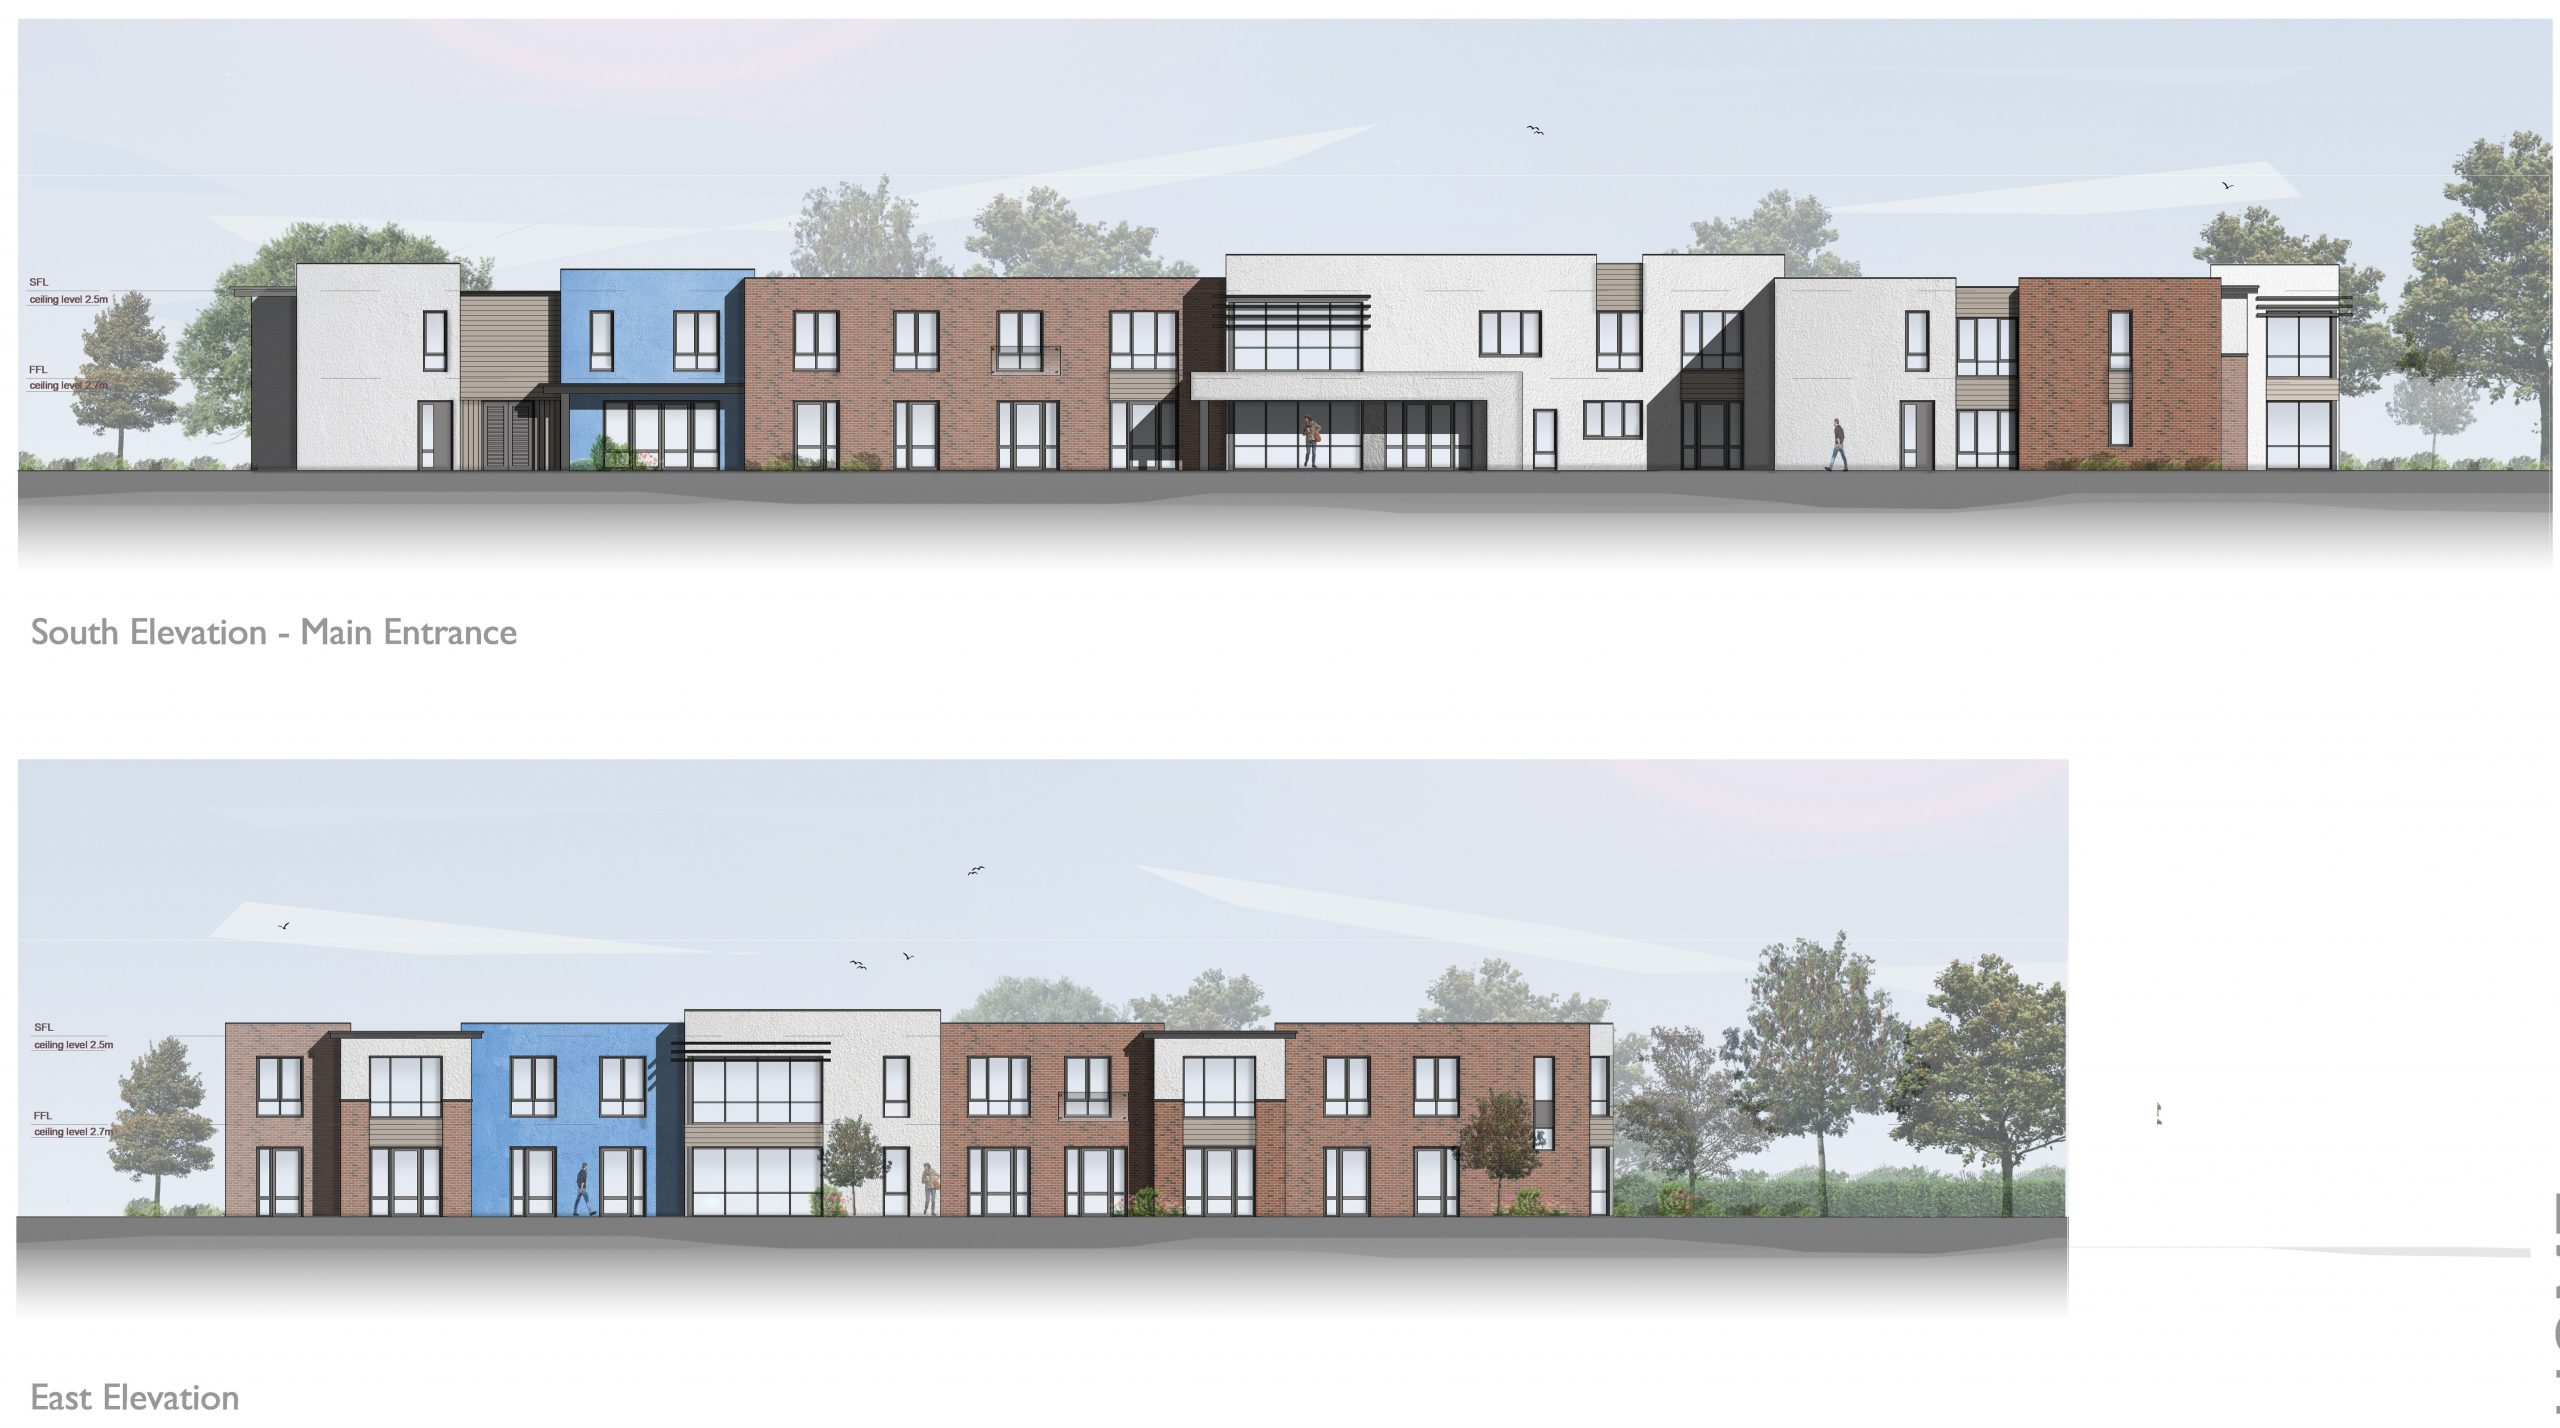 1526_F10_EL02_Proposed Elevations_Care Home_Rev B 29.05.19